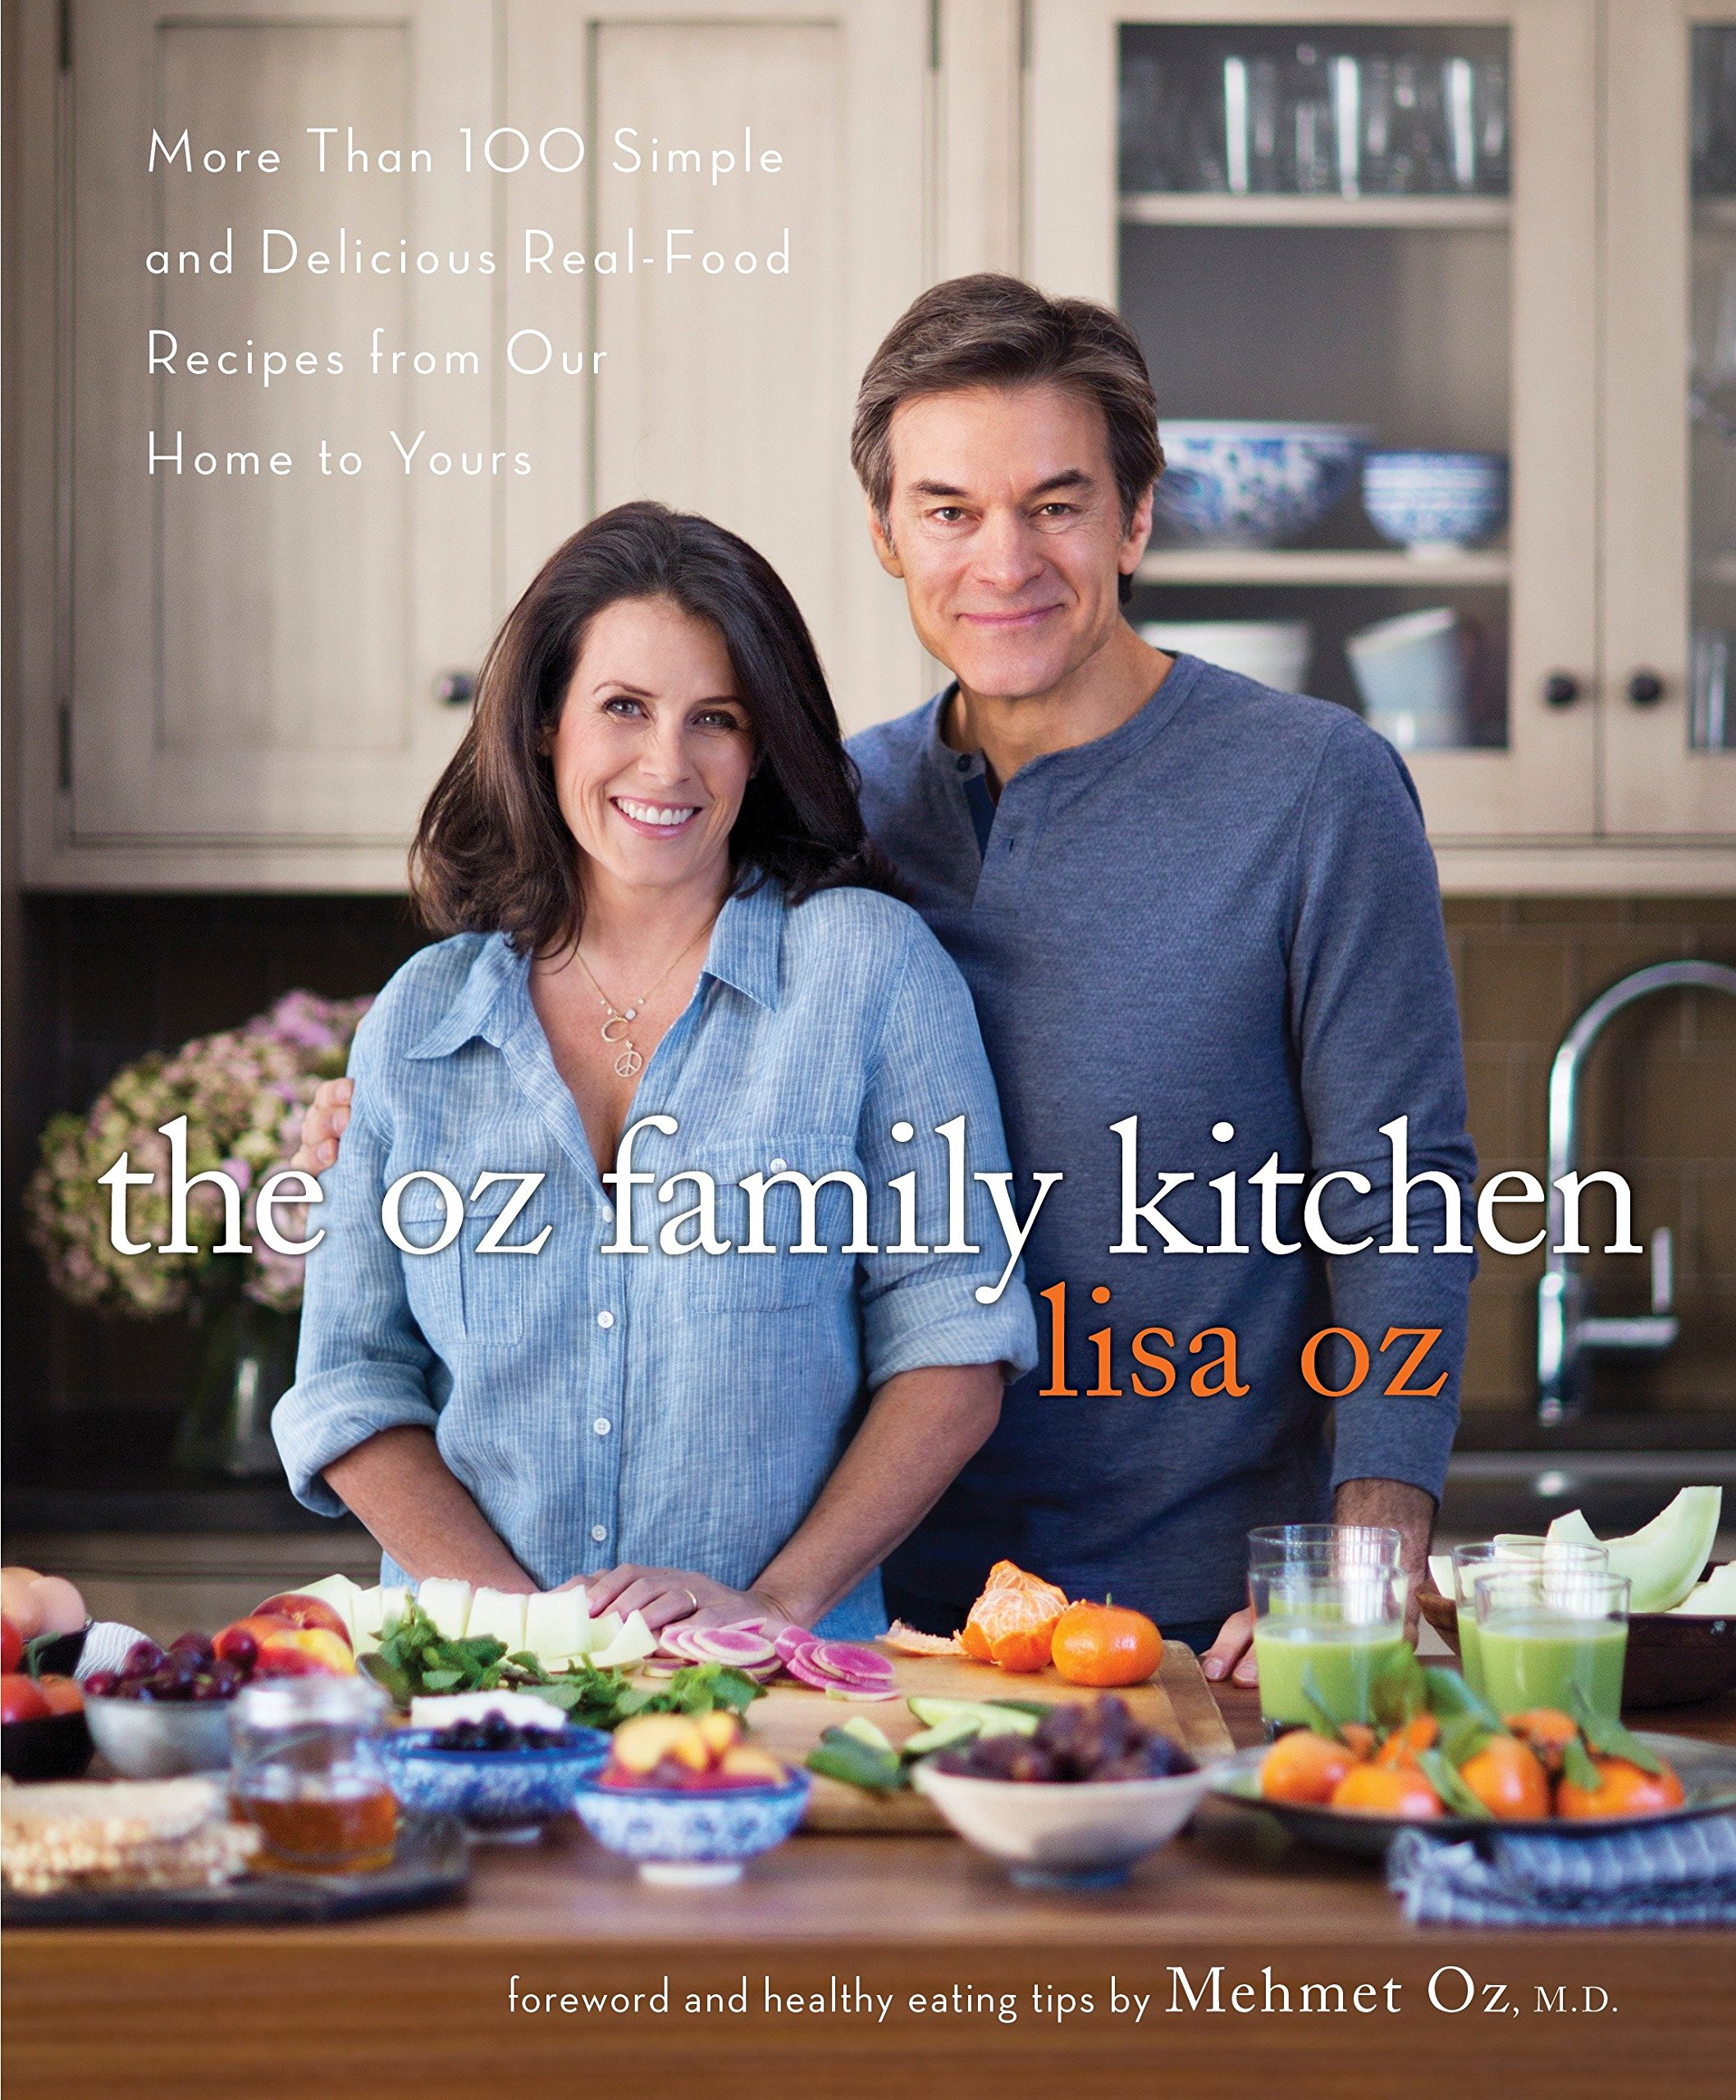 The Oz Family Kitchen More Than 100 Simple And Delicious Real Food Recipes From Our Home To Yours A Cookbook Oz Lisa Oz M D Mehmet 9781101903230 Amazon Com Books